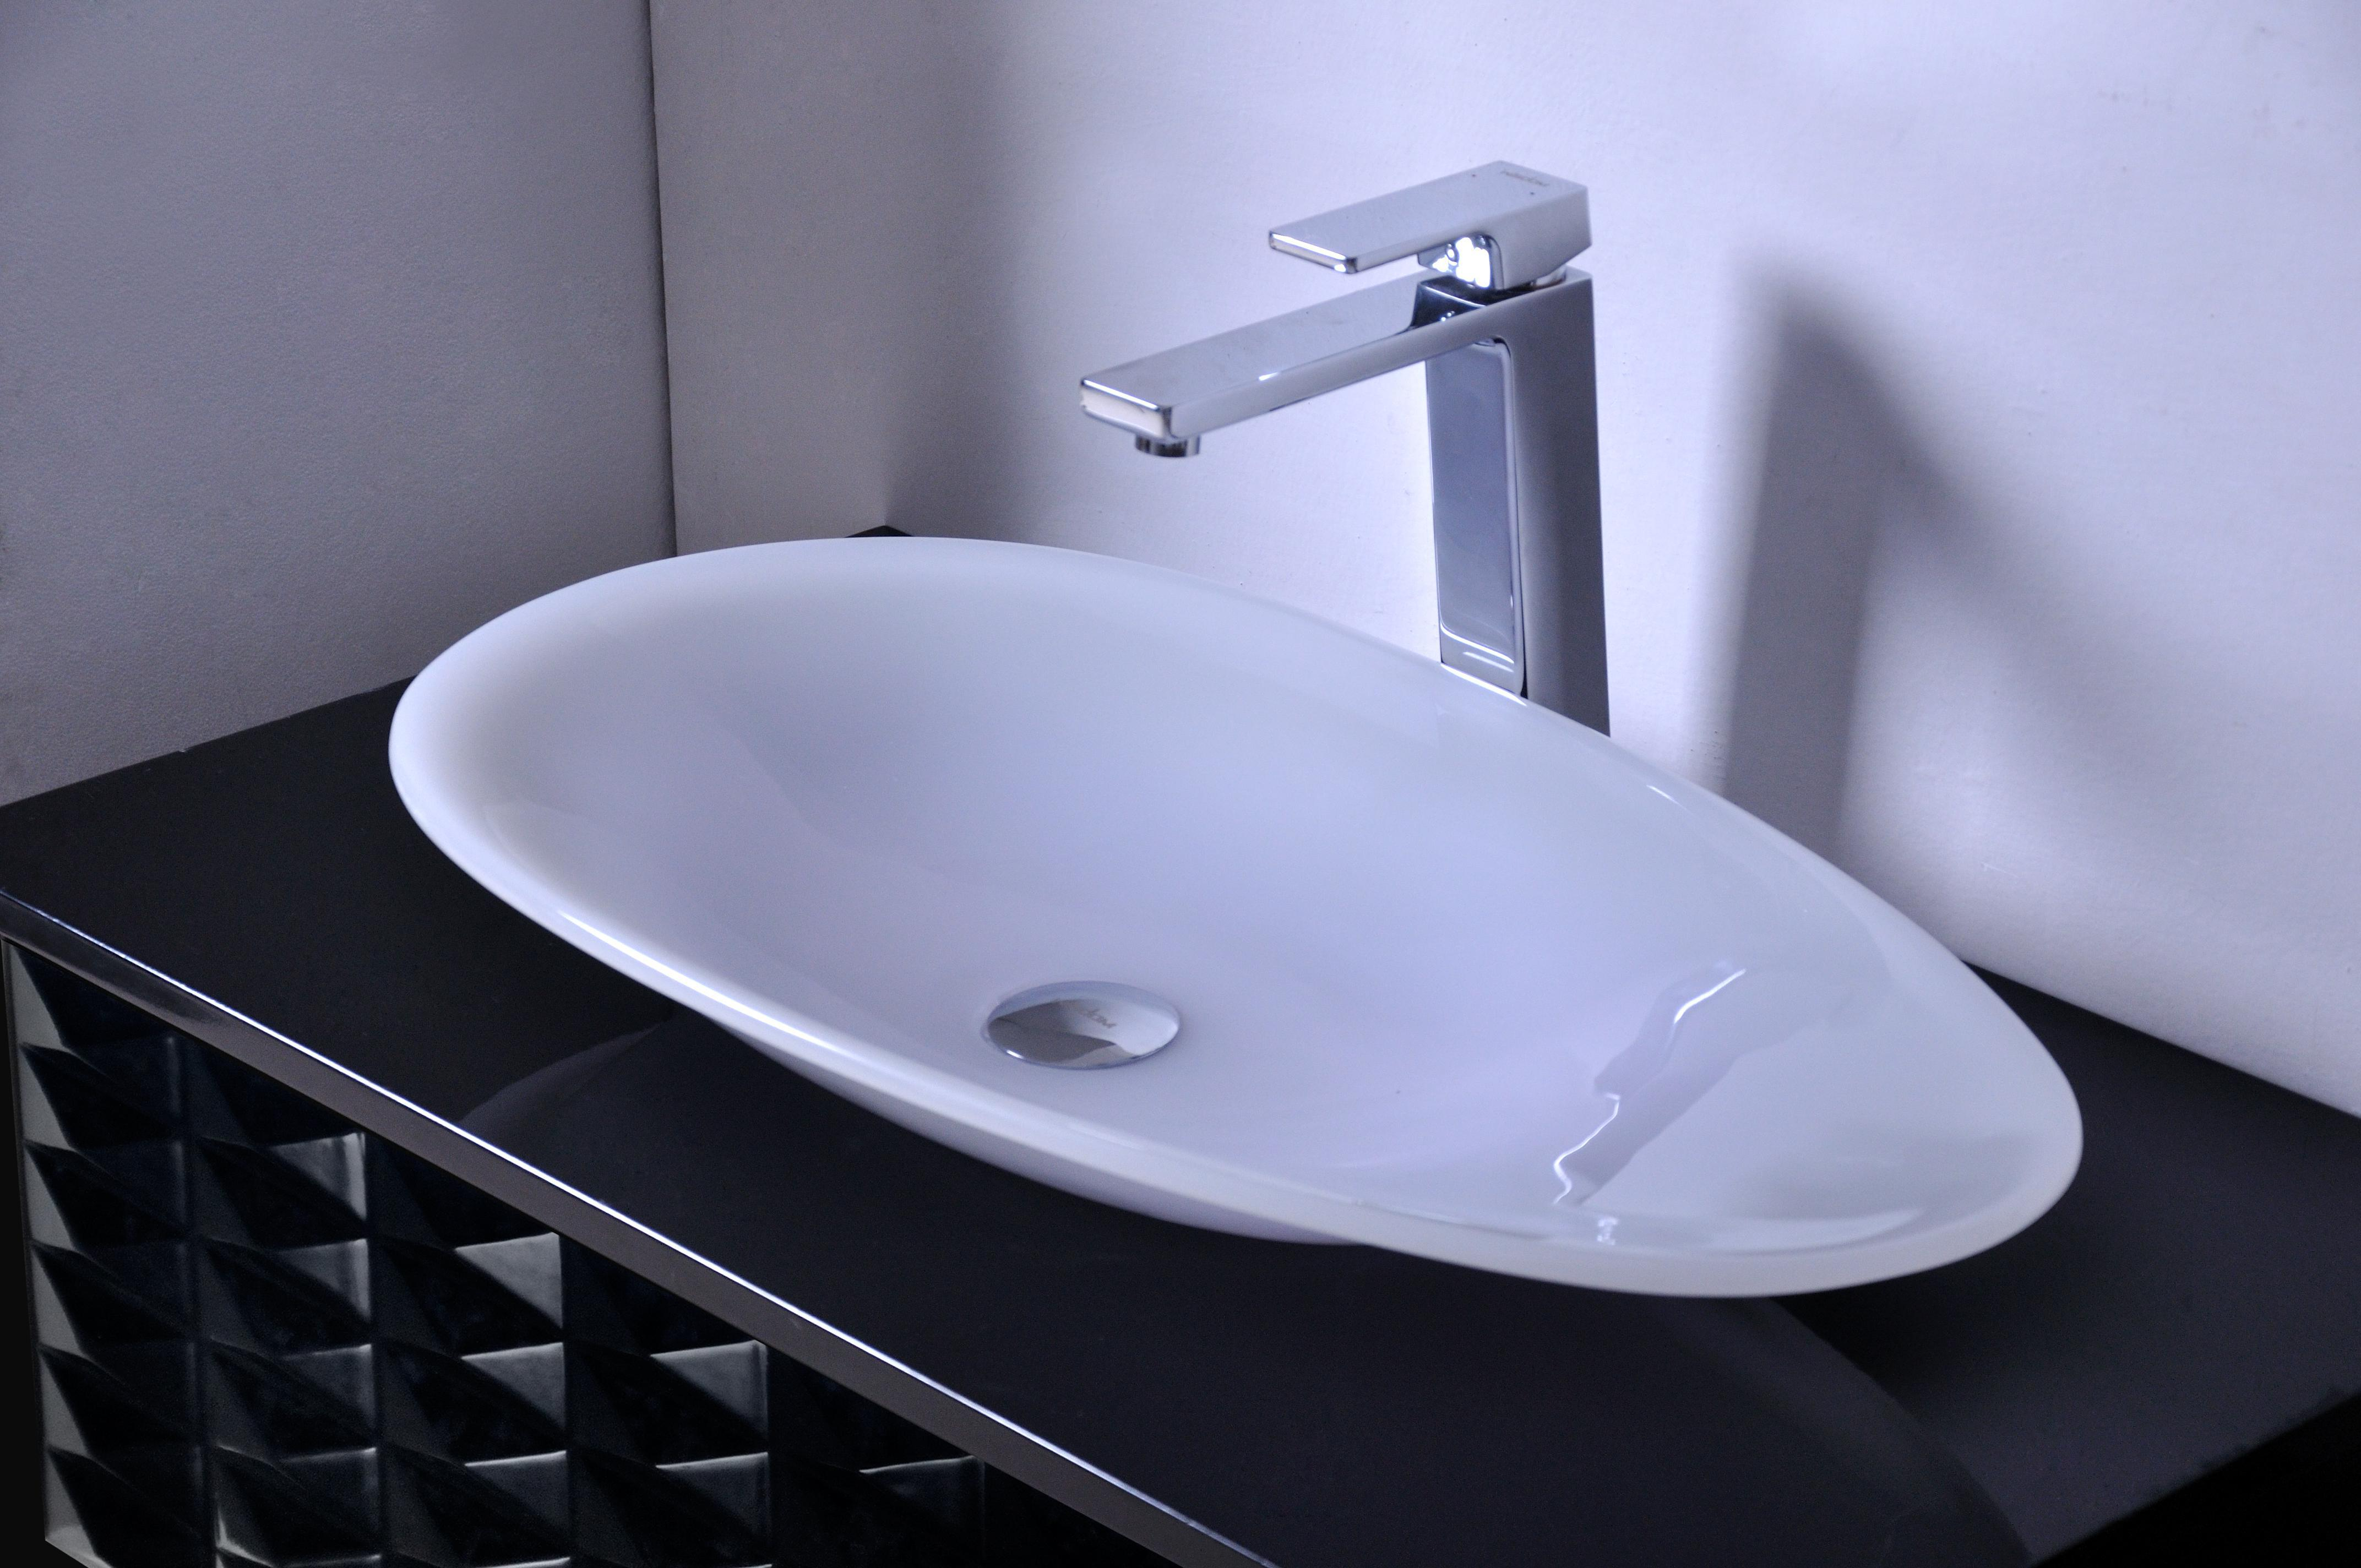 700mm*400mm*100mm CUPC Certificate Bathroom Resin Oval Counter Top Sink  Colourful Cloakroom Wash Basin Solid Surface Stone Vessel RS38280